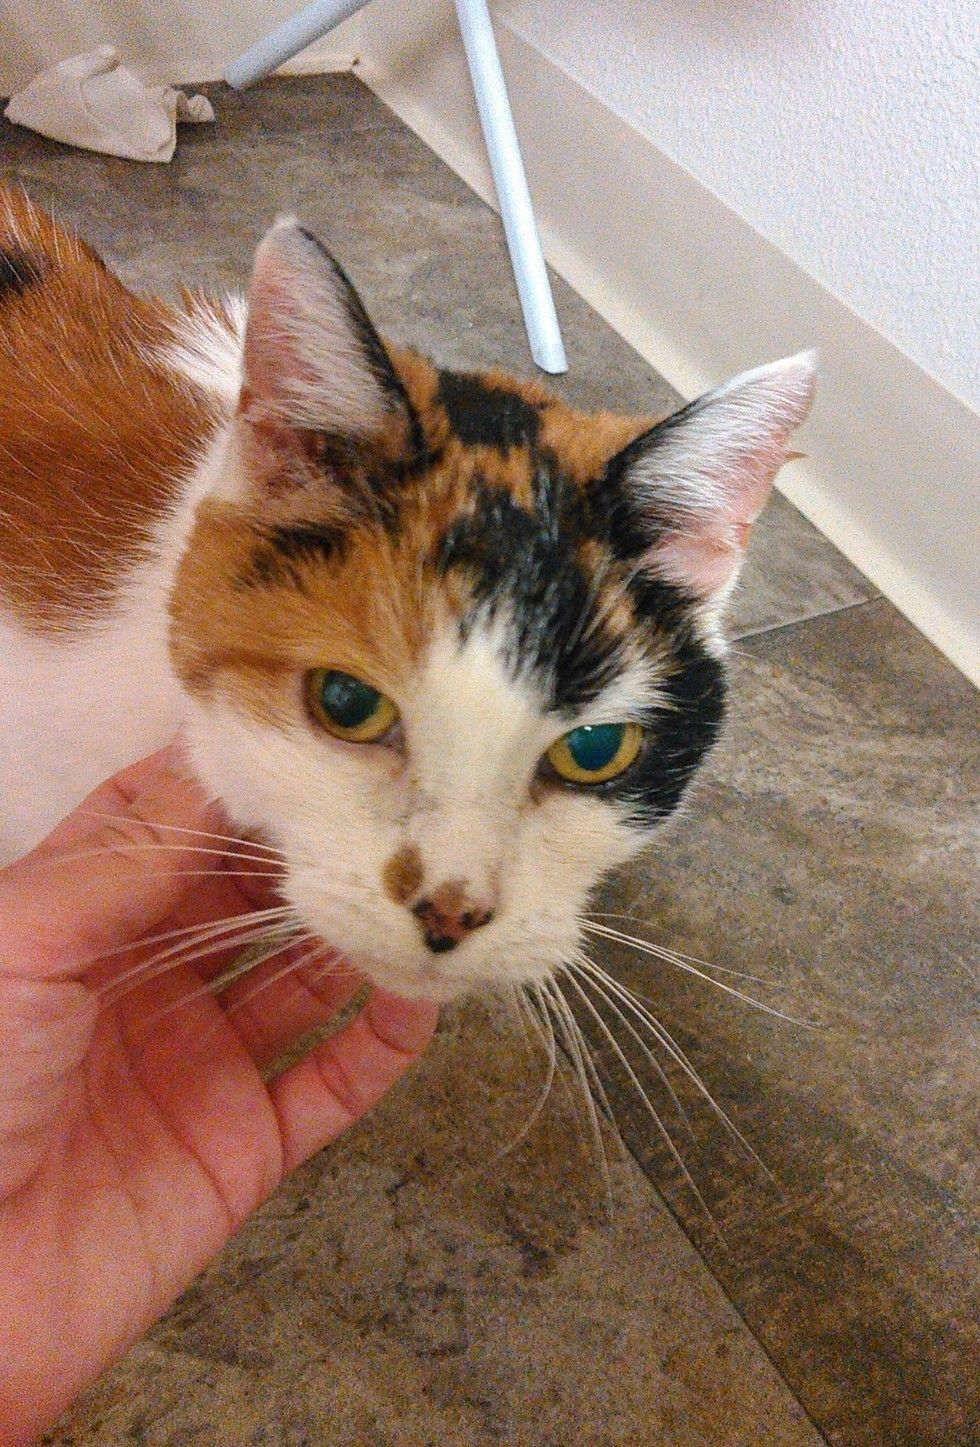 Couple Takes Two 21 Year Old Bonded Cats Out Of Shelter So They Can Spend Their Golden Years In A Loving Home Cats Senior Cat 21 Years Old